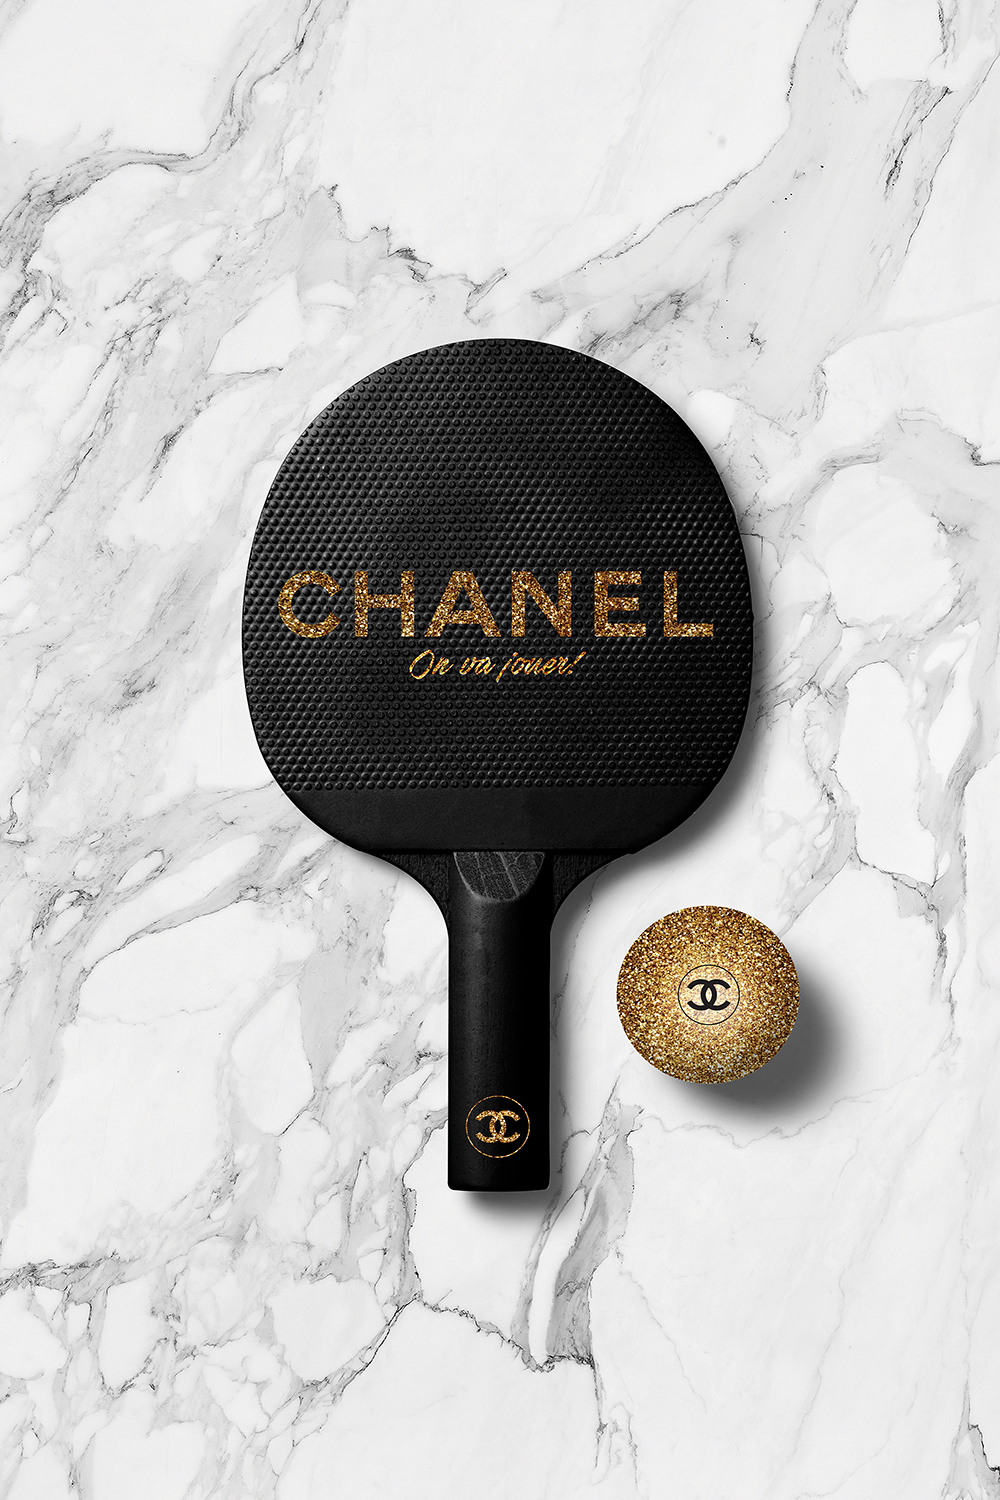 Black ping pong paddle with Chanel logo on it next to a gold Chanel ping pong ball on a white marble surface